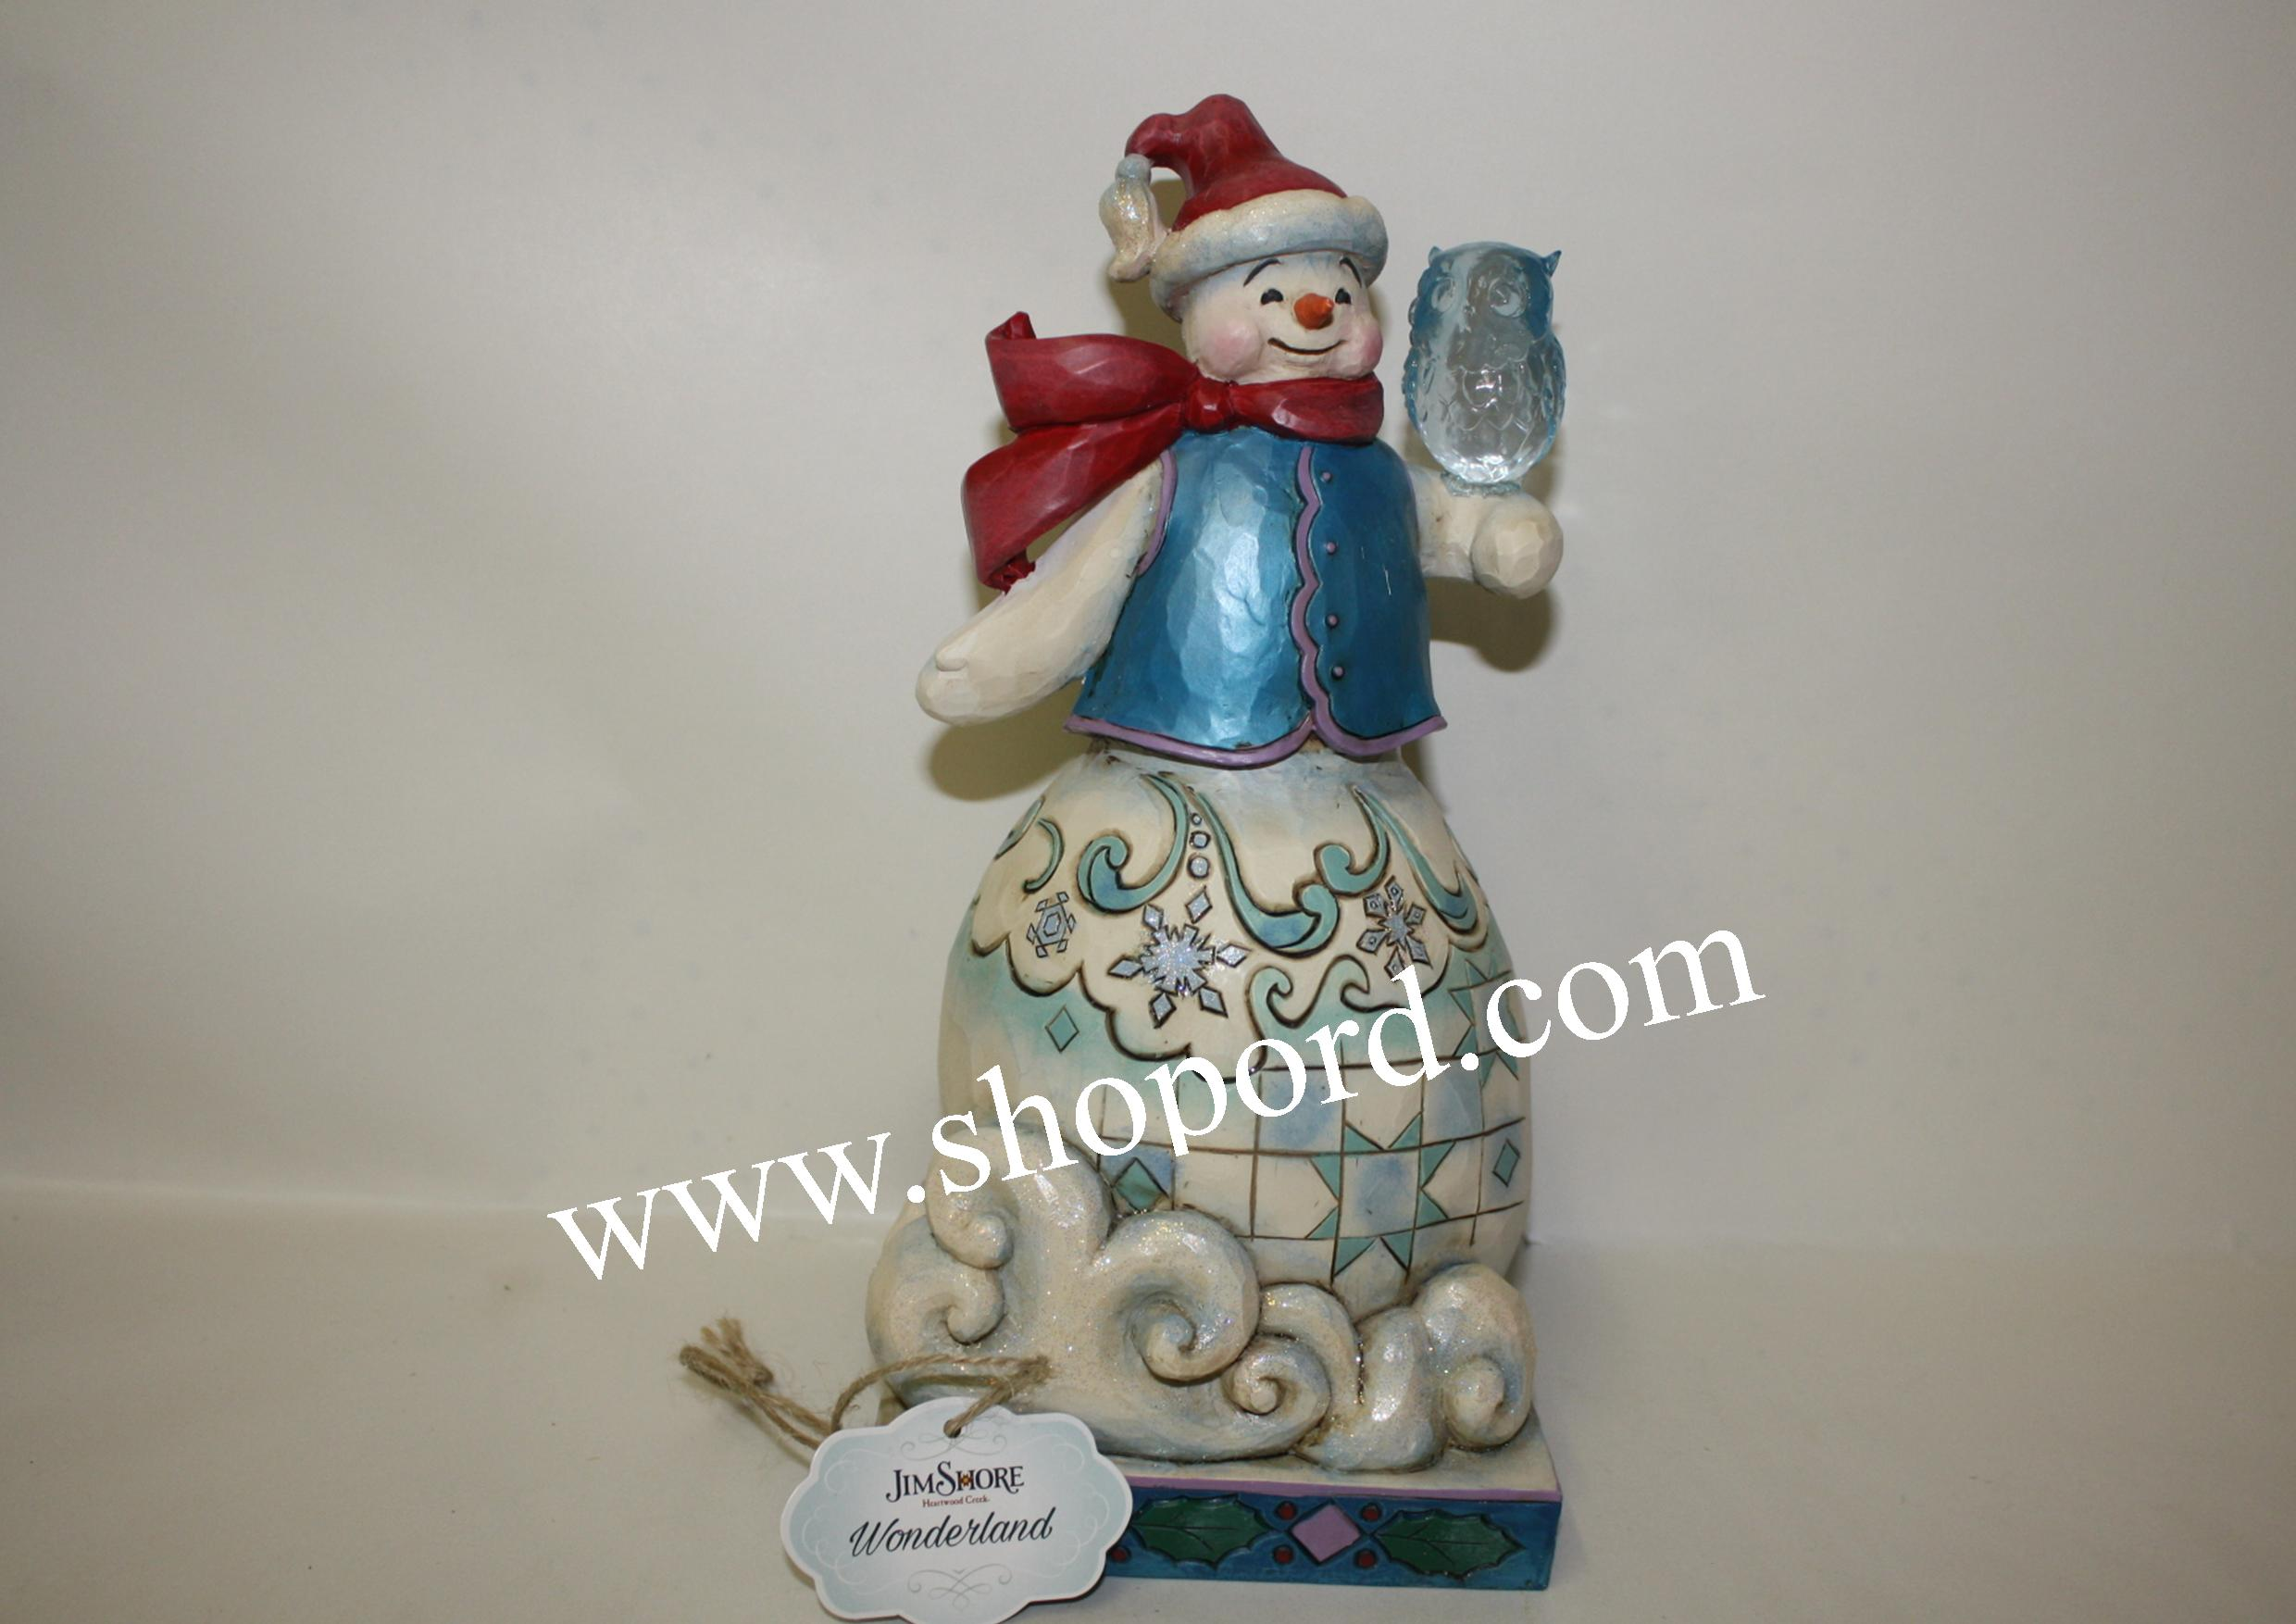 Jim Shore Our Friendship Never Melts Winter Wonderland Snowman Snowflakes With Owl Figurine 4053673